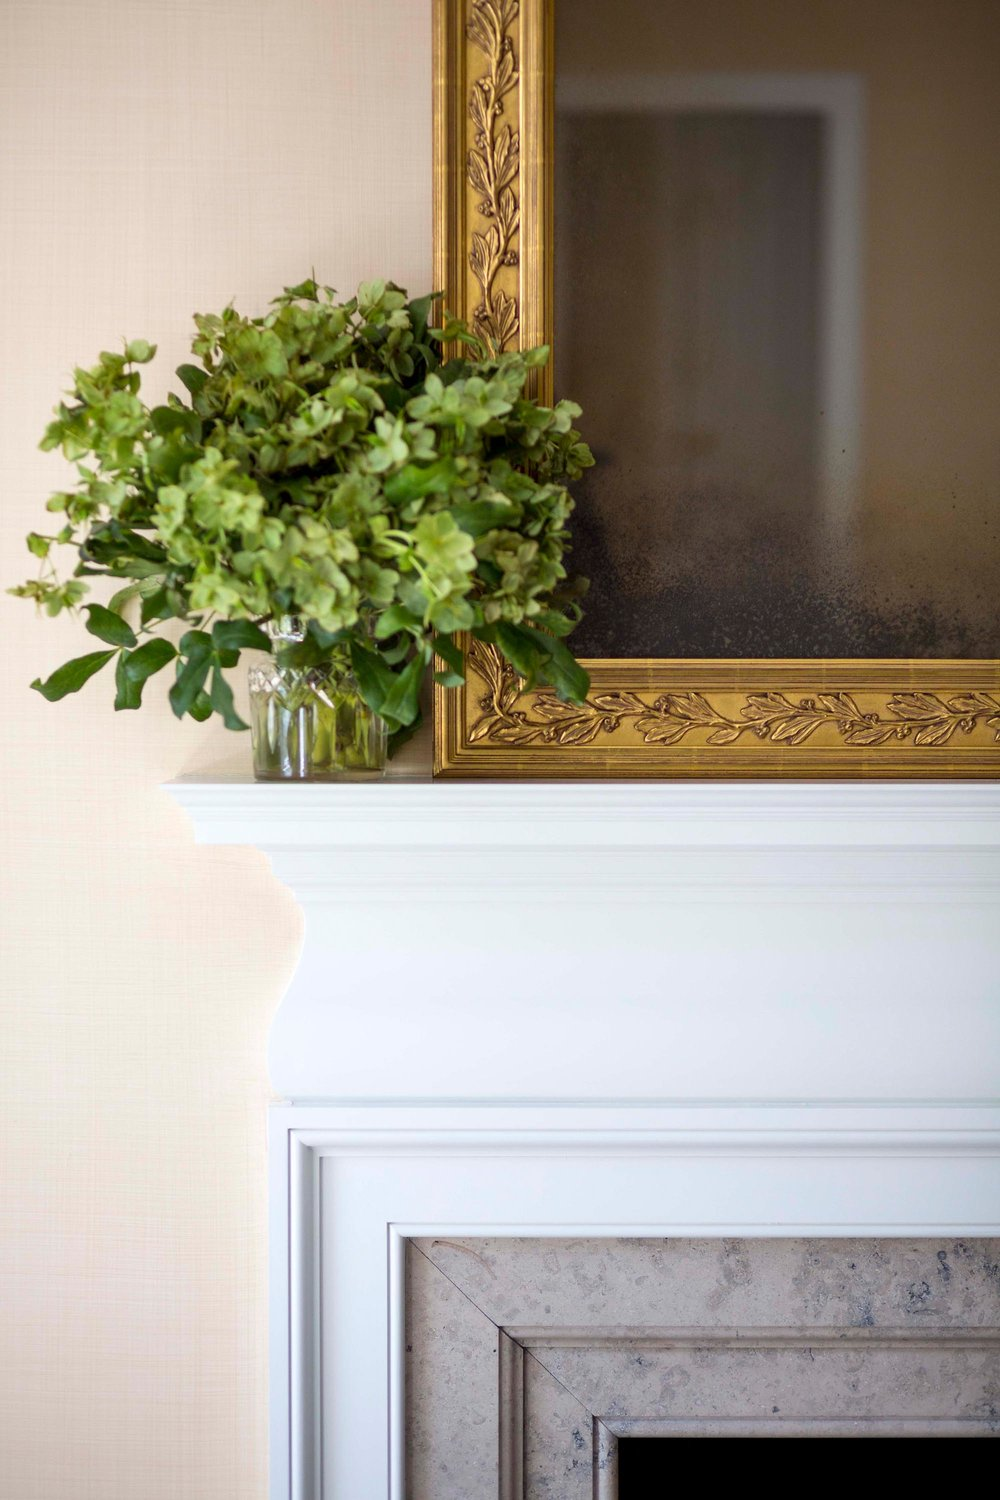 Gold framed mirror resting on white fireplace mantle